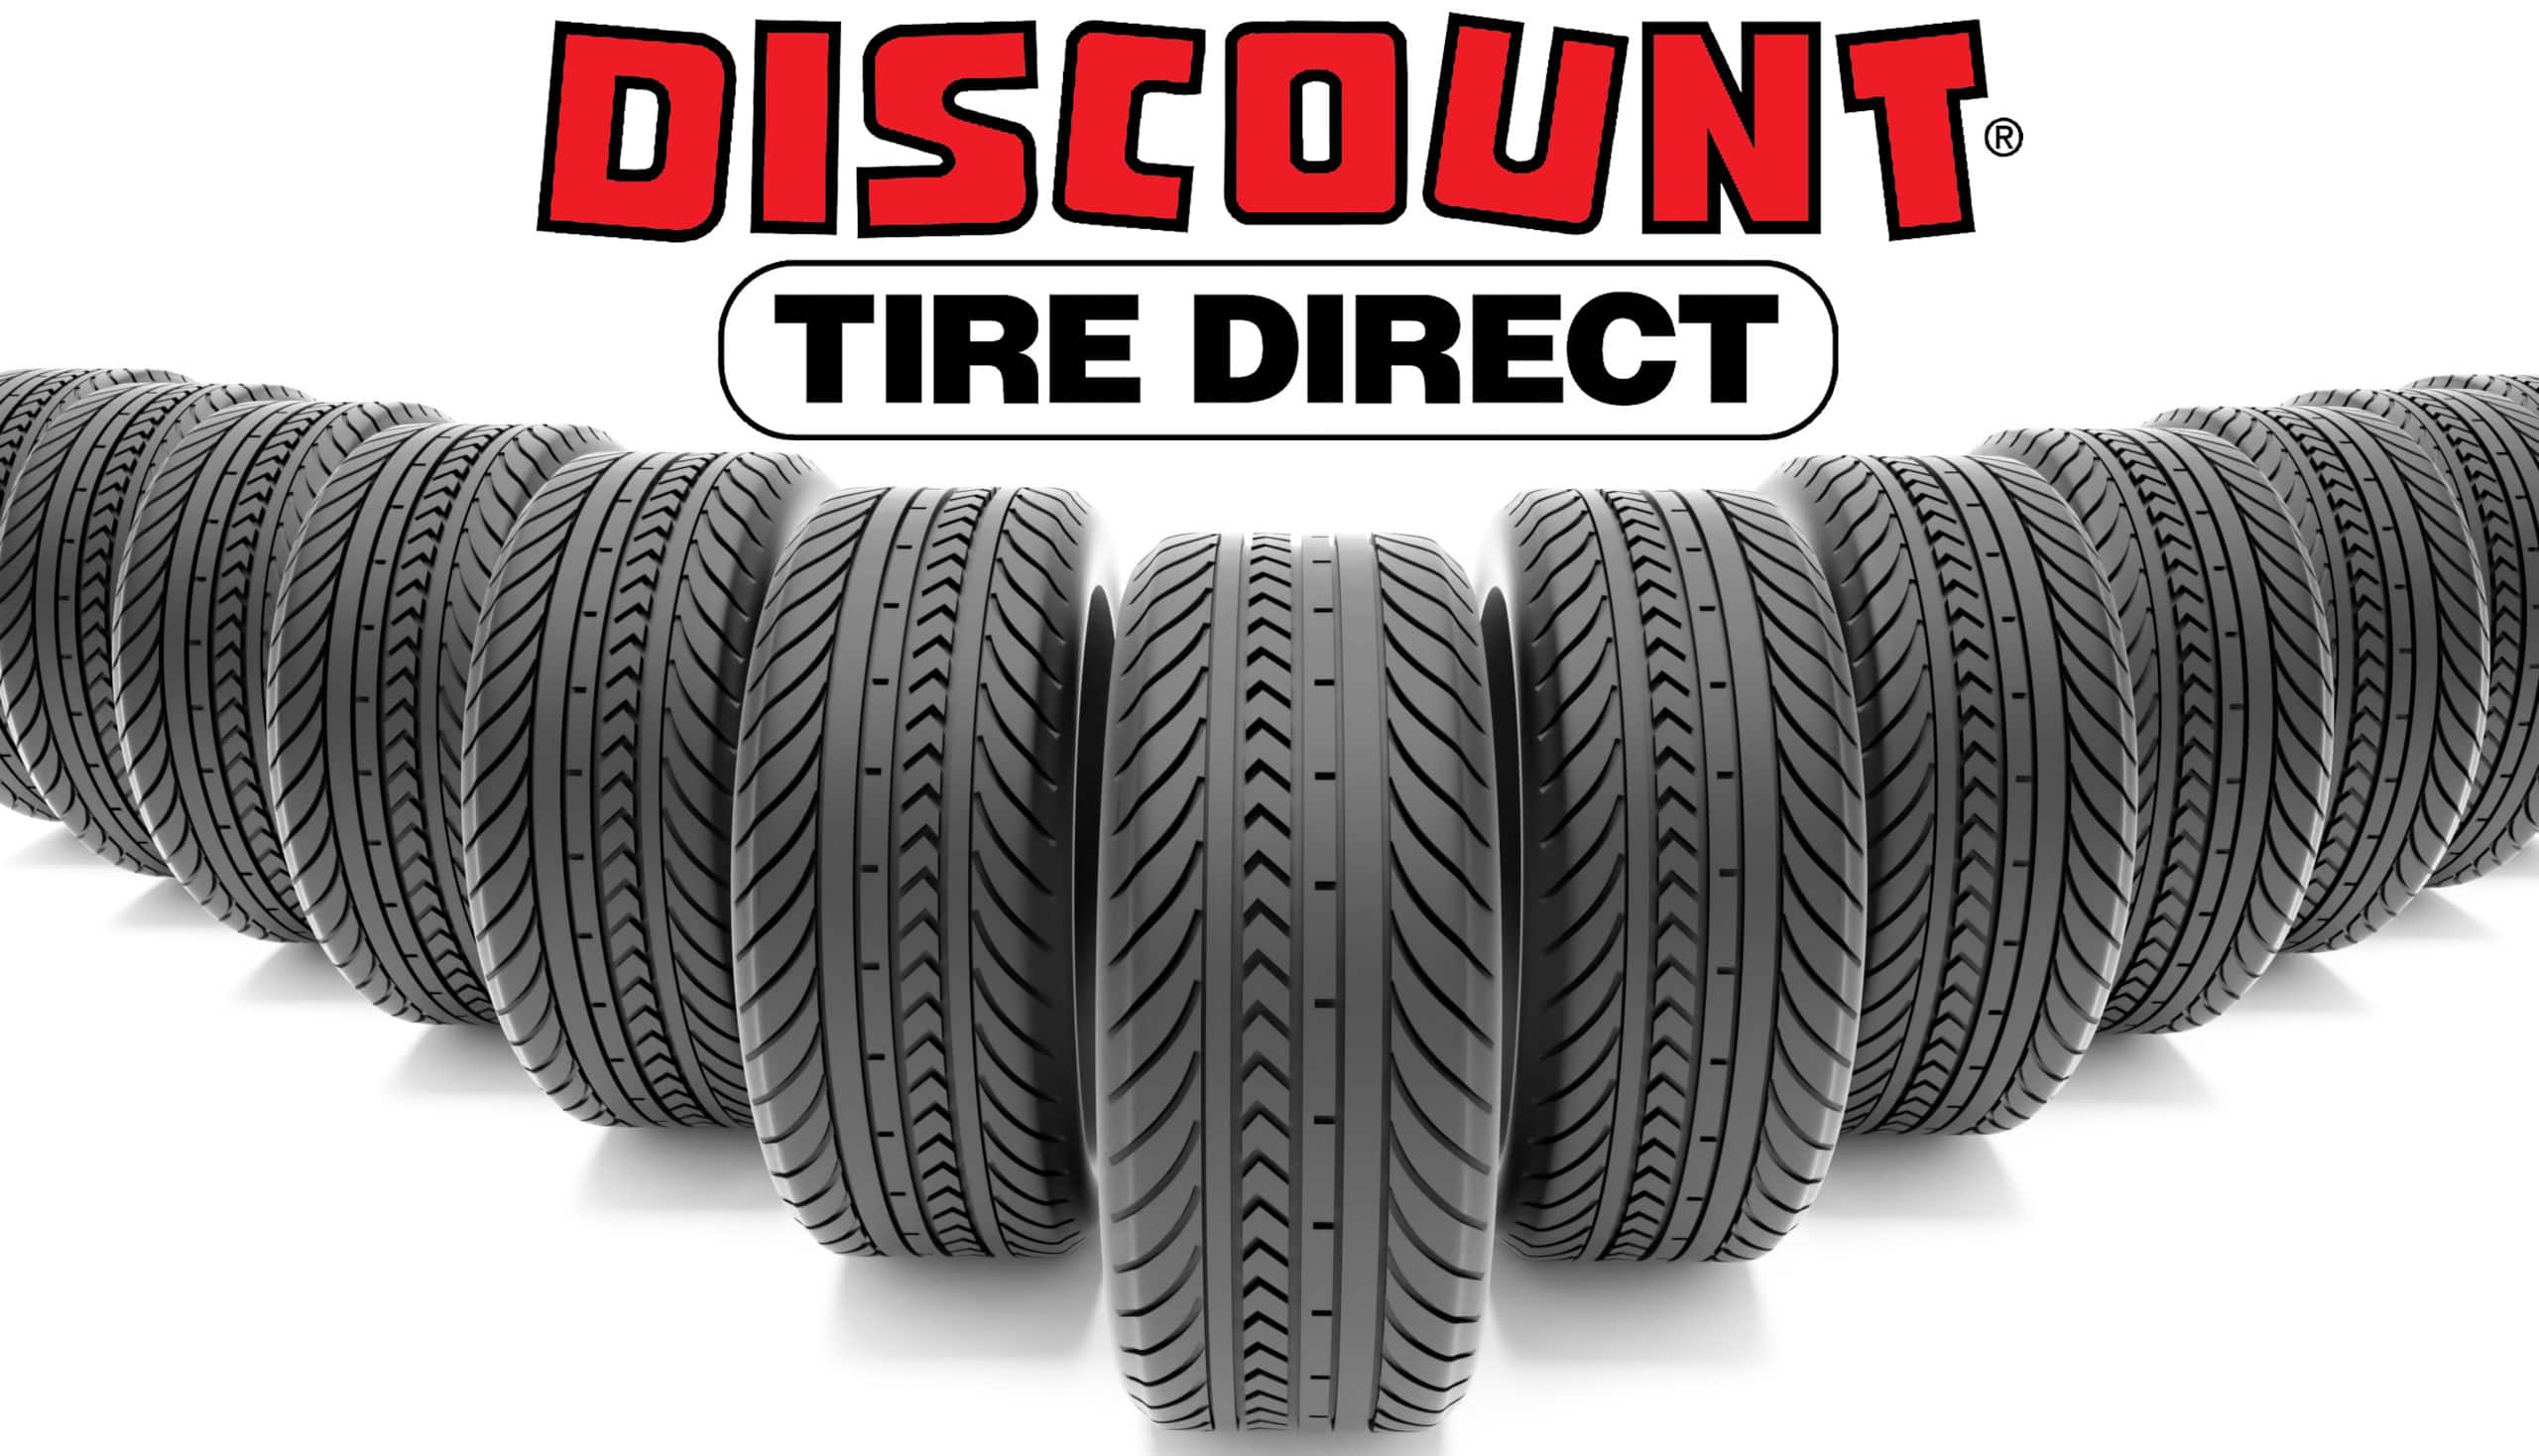 Discount Tire Direct Memorial Day sale get up to $320 in Visa pre-paid card rebate on tires and wheels.